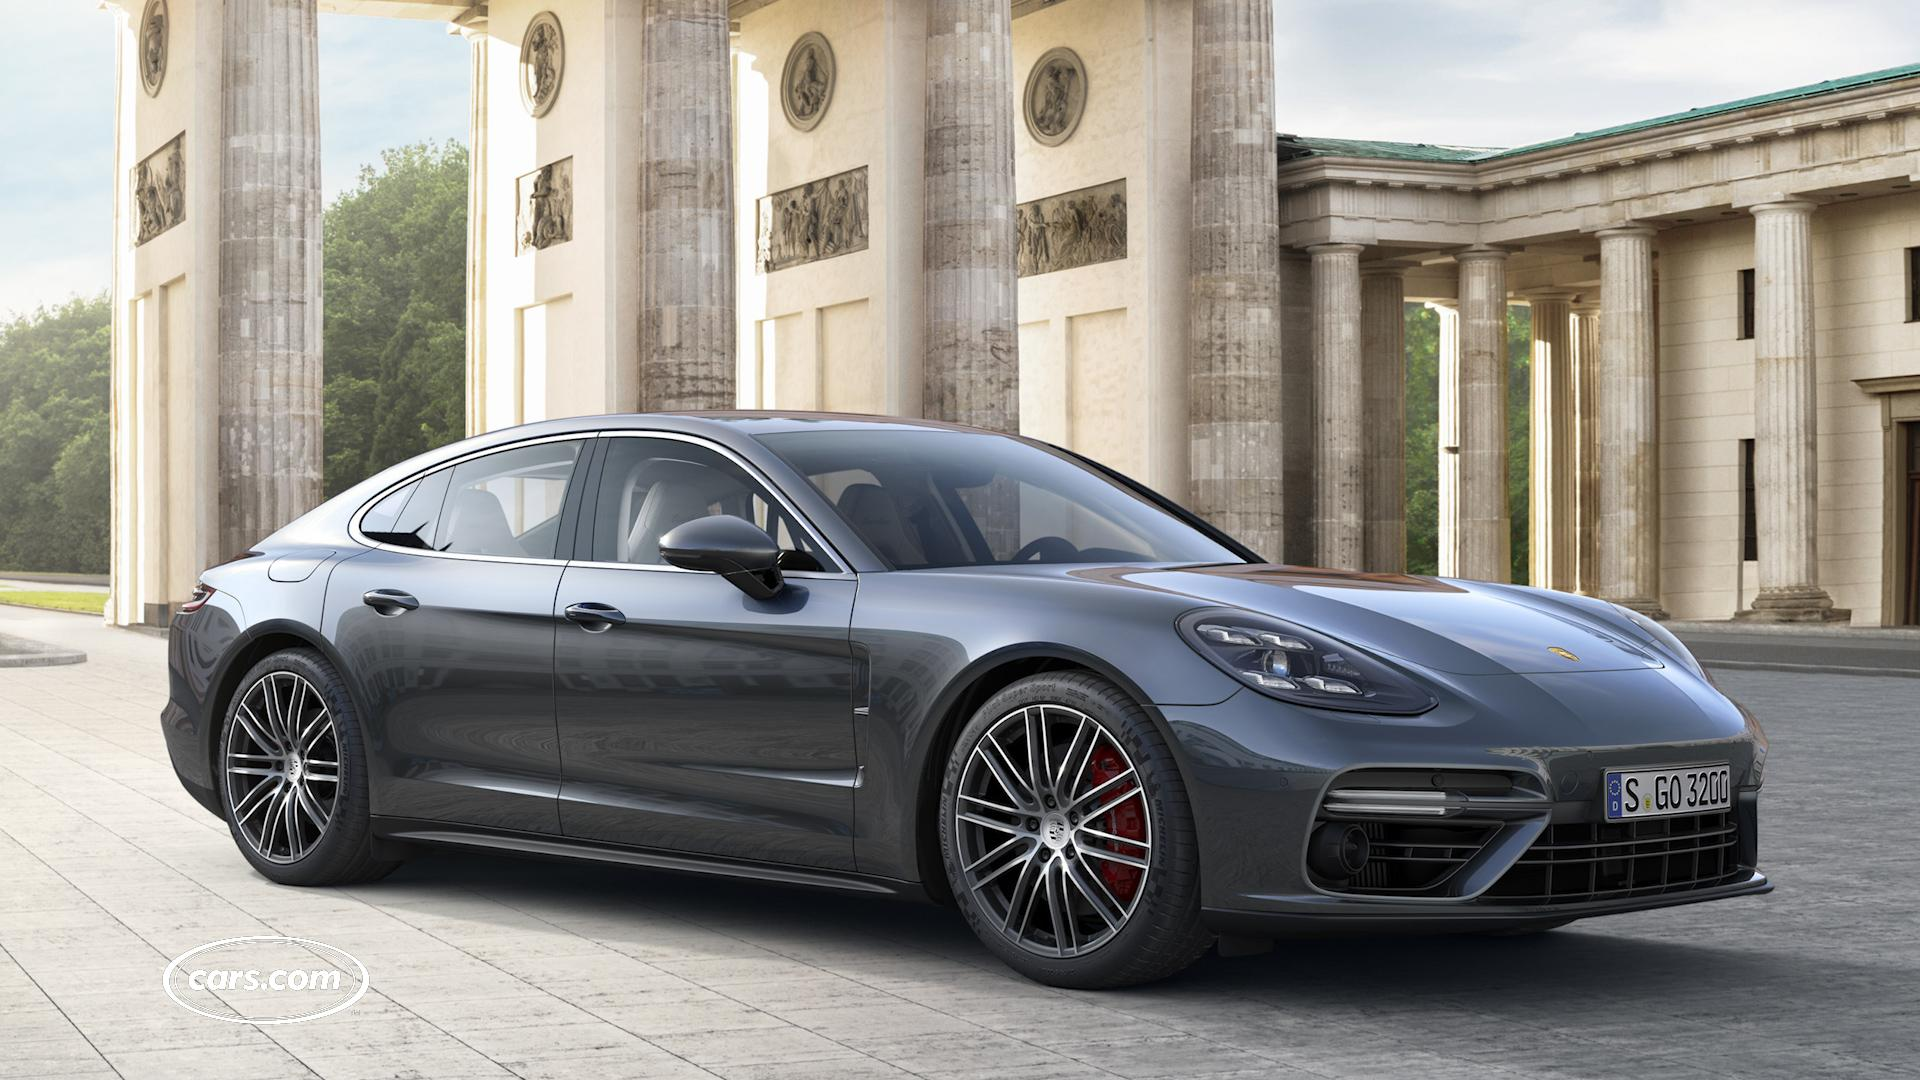 2017 Porsche Panamera Review: First Impressions